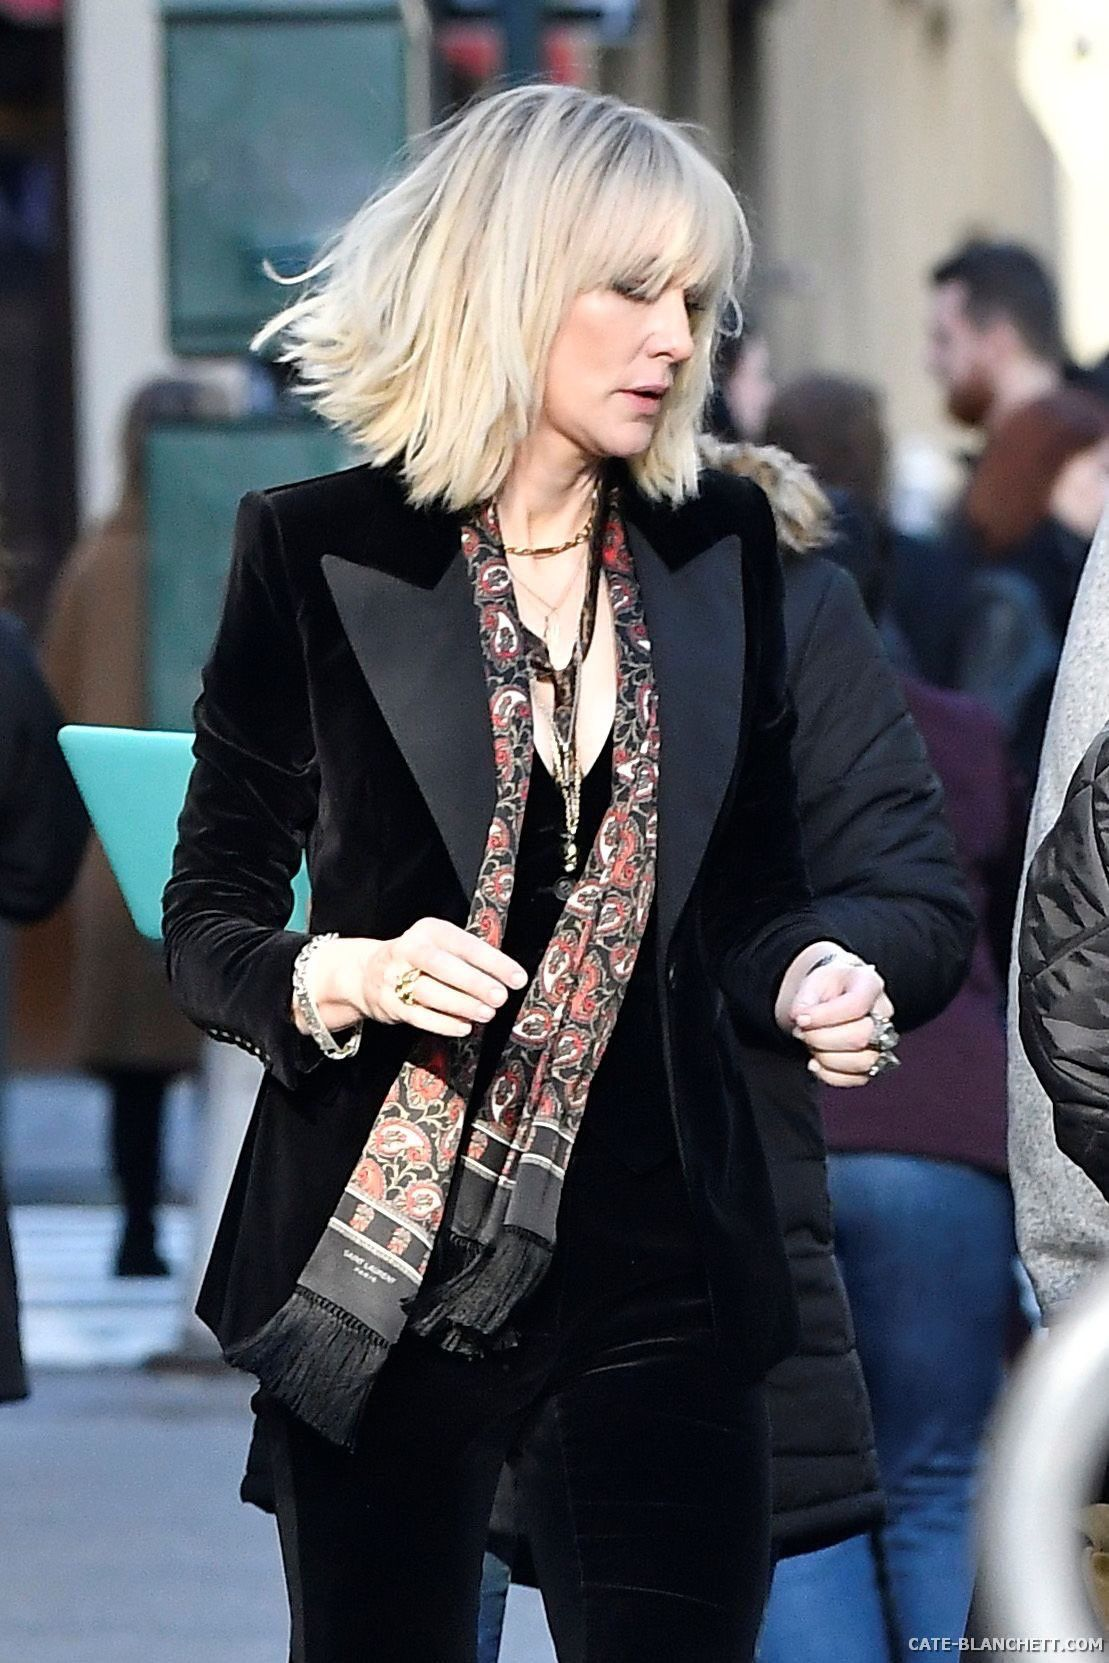 Cate Blanchett on the set of ocean's 8 filming in NYC ...